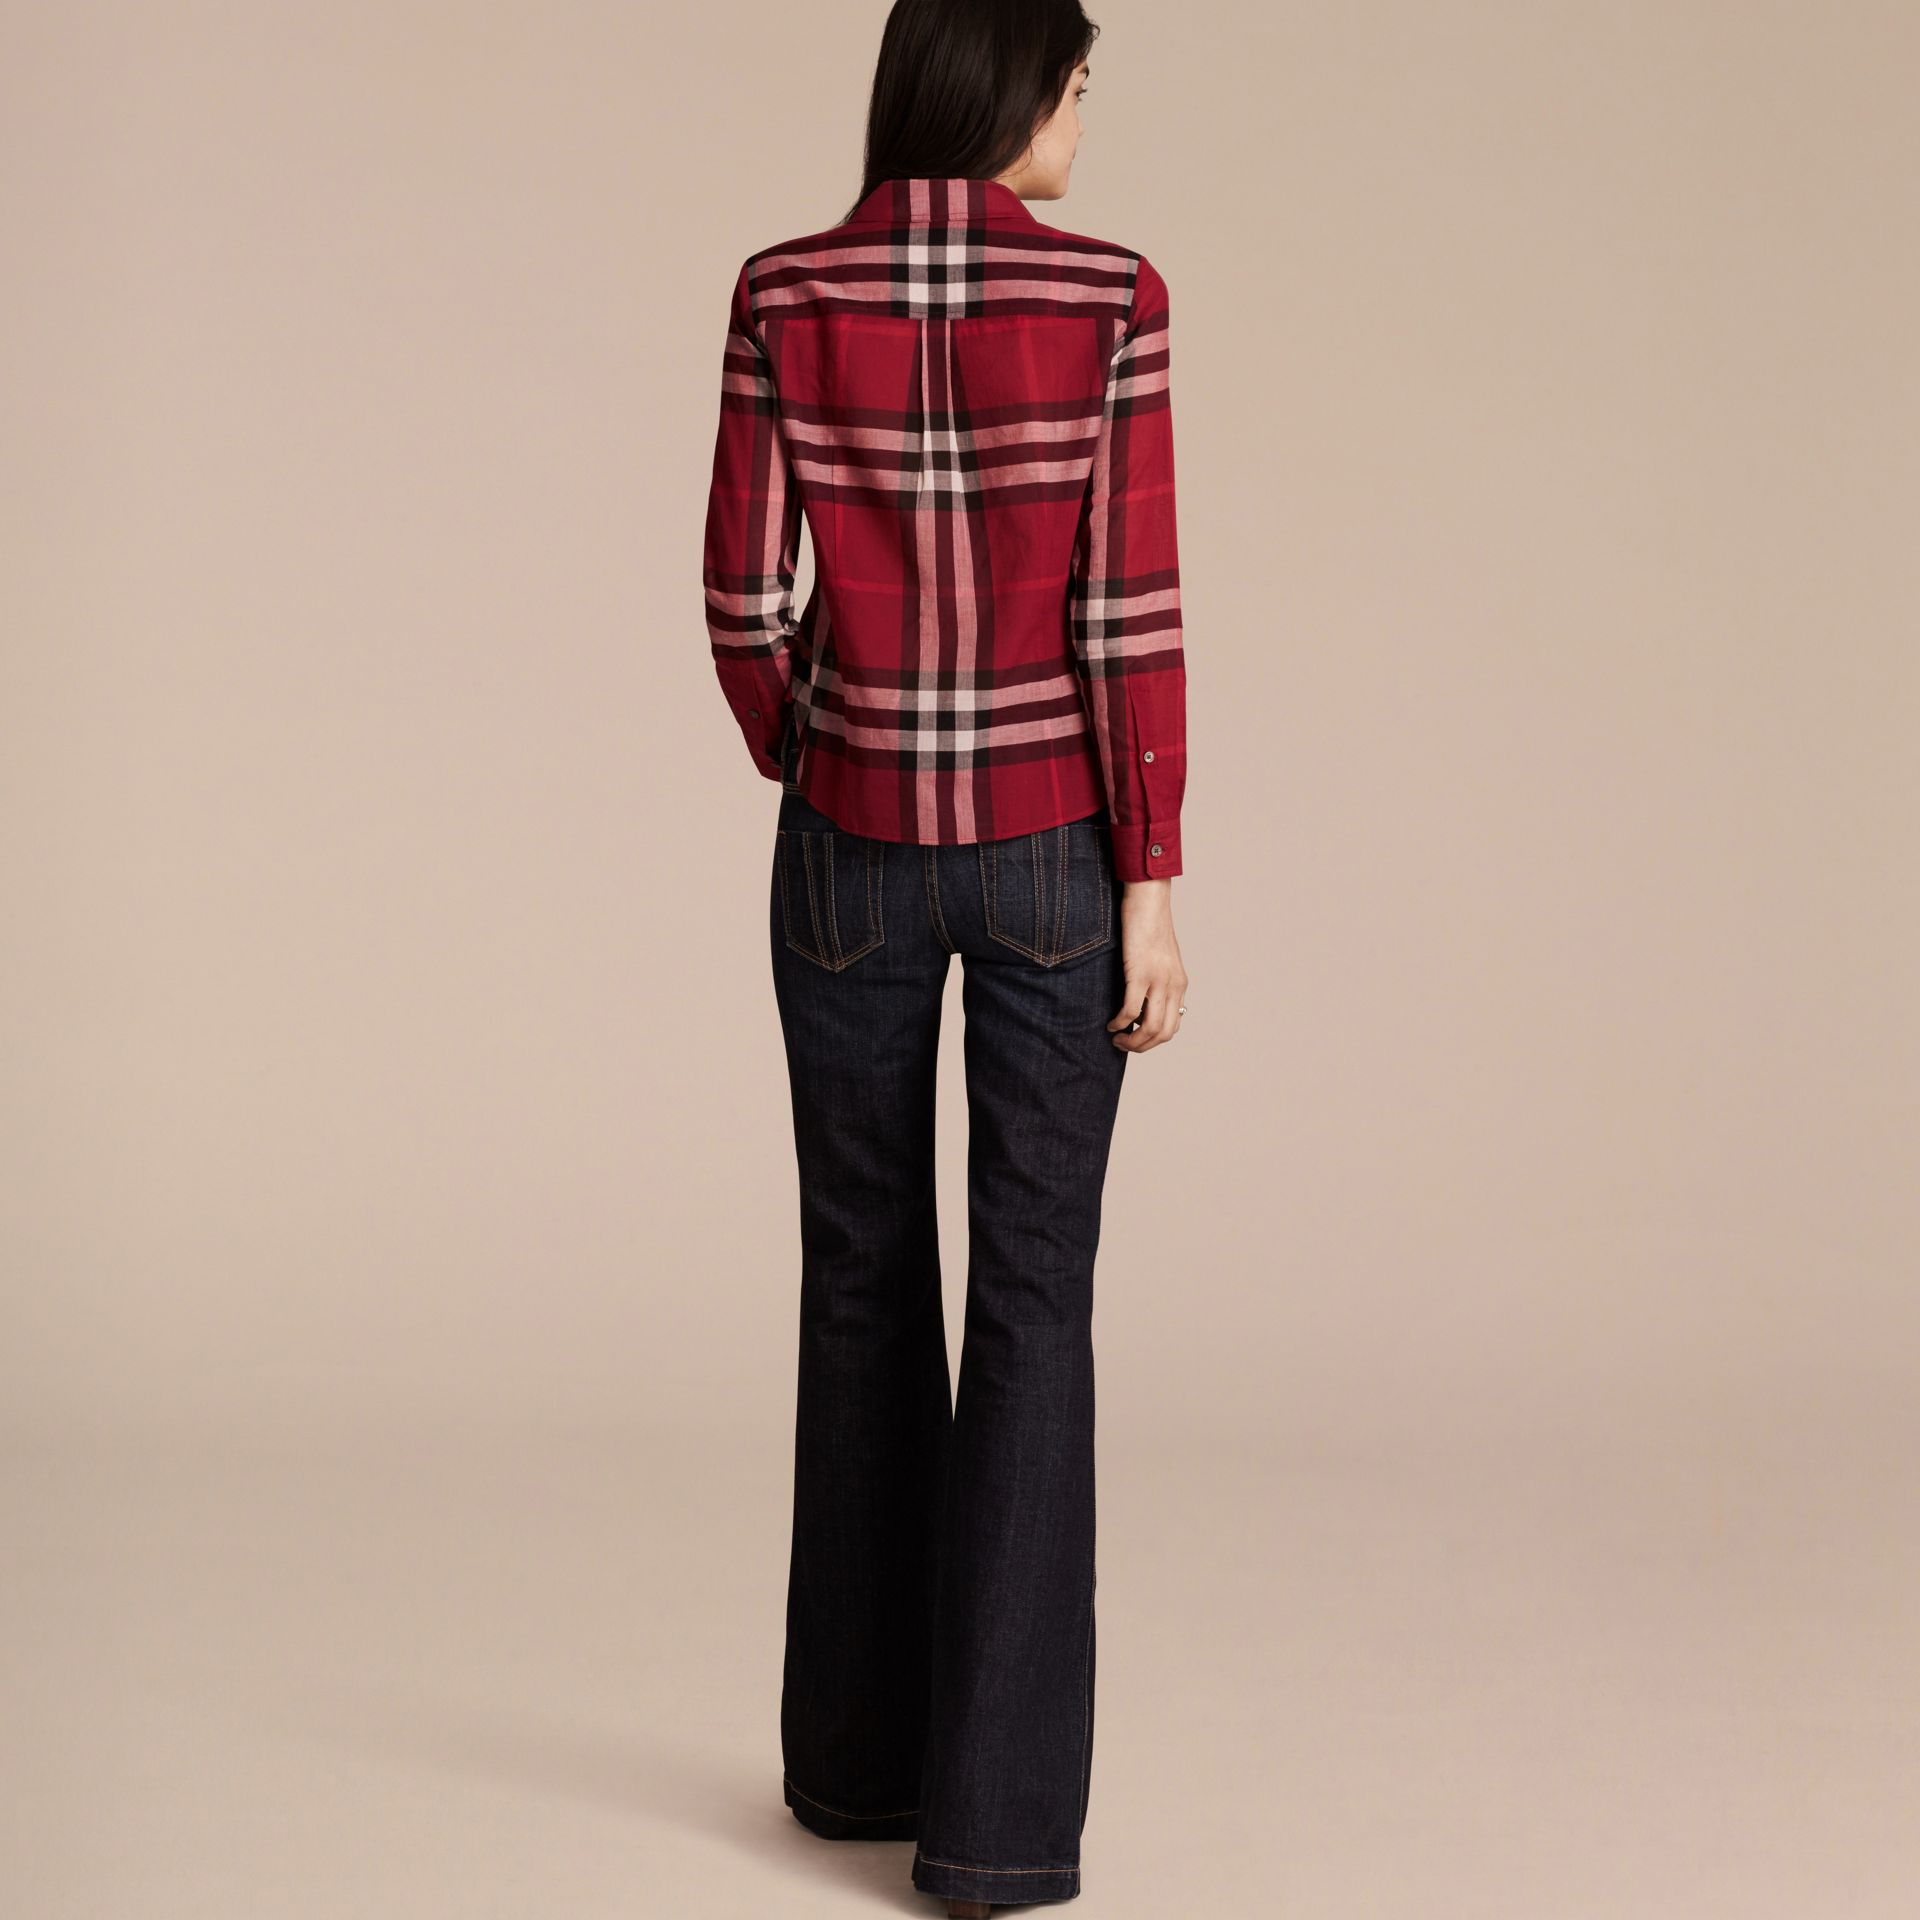 Poppy red Check Cotton Shirt Poppy Red - gallery image 3